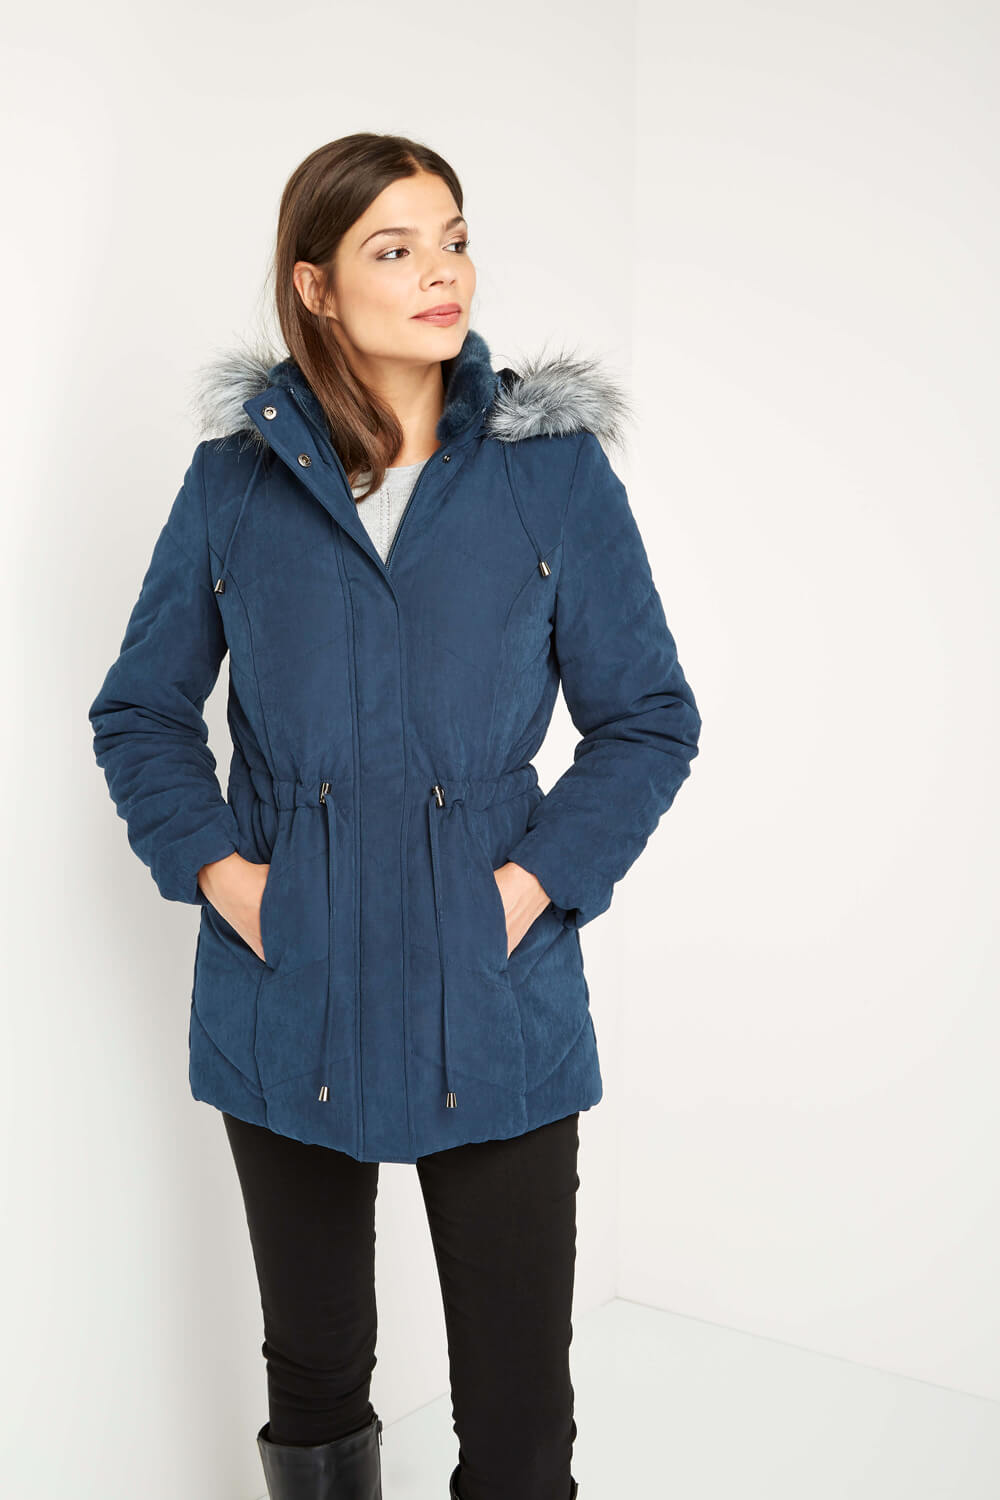 Roman-Originals-Women-039-s-Blue-Quilted-Parka-Coat-with-Hood-Sizes-10-20 thumbnail 14